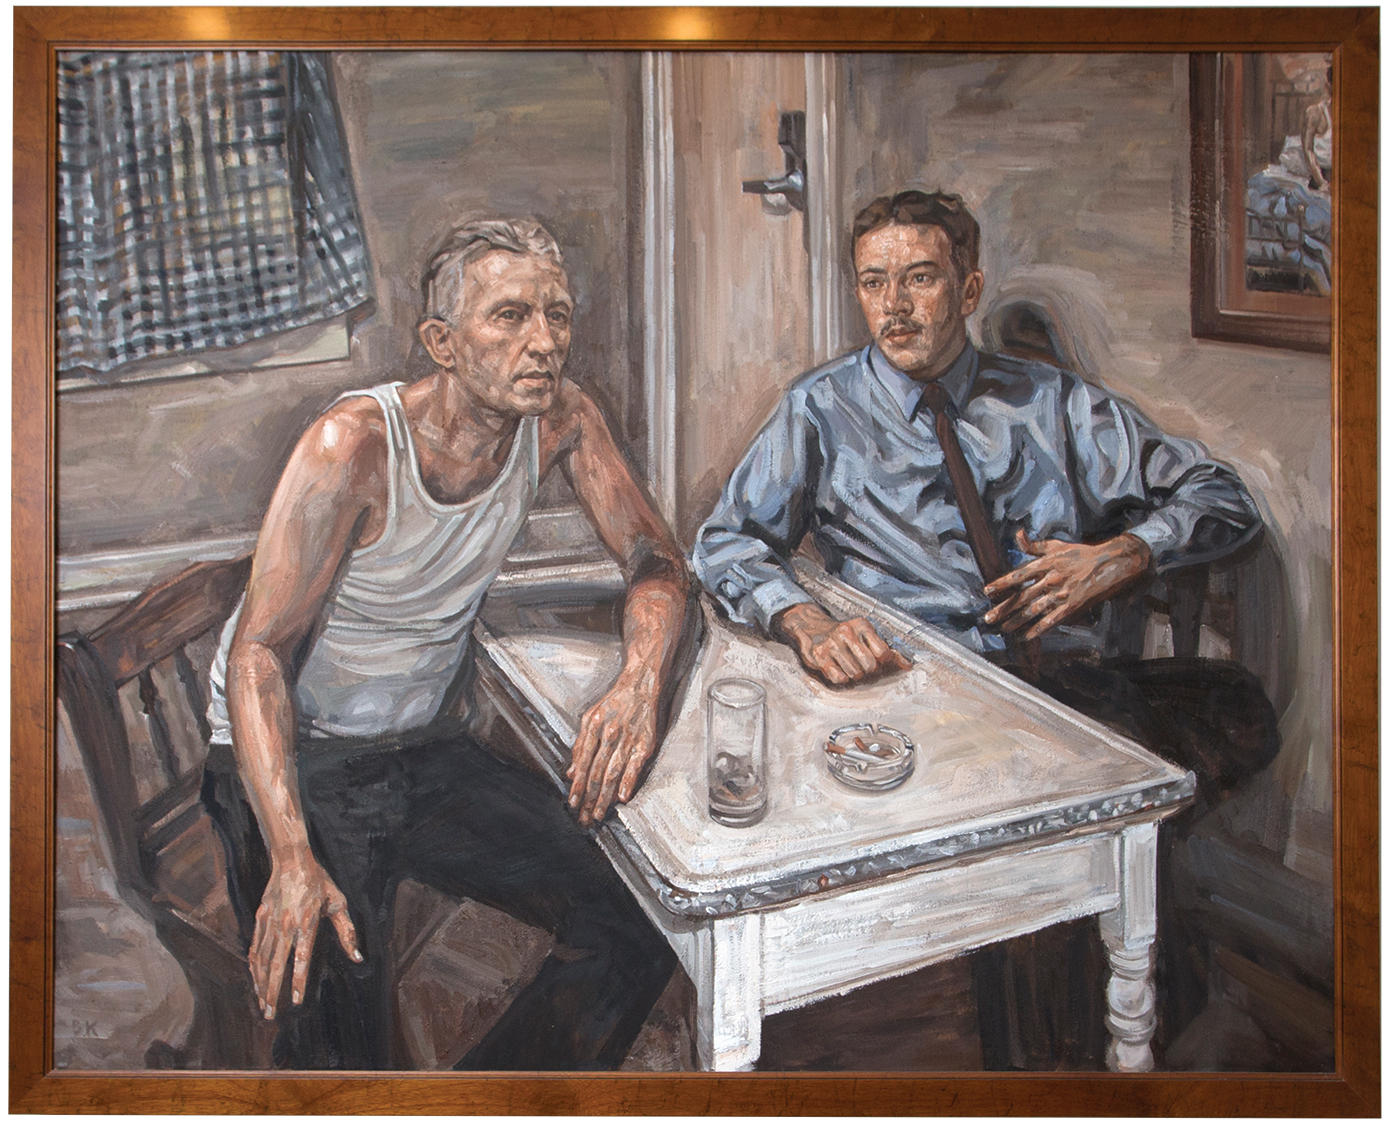 """Bill and Ebby,"" a painting by local artist Baxter Knowlton gifted to the Wolfe Street Center; based on a portion of ""Bill's Story"" from the Big Book, the basic text of the original 12 steps of recovery. It depicts Ebby T. sharing with Bill W. how he got sober."